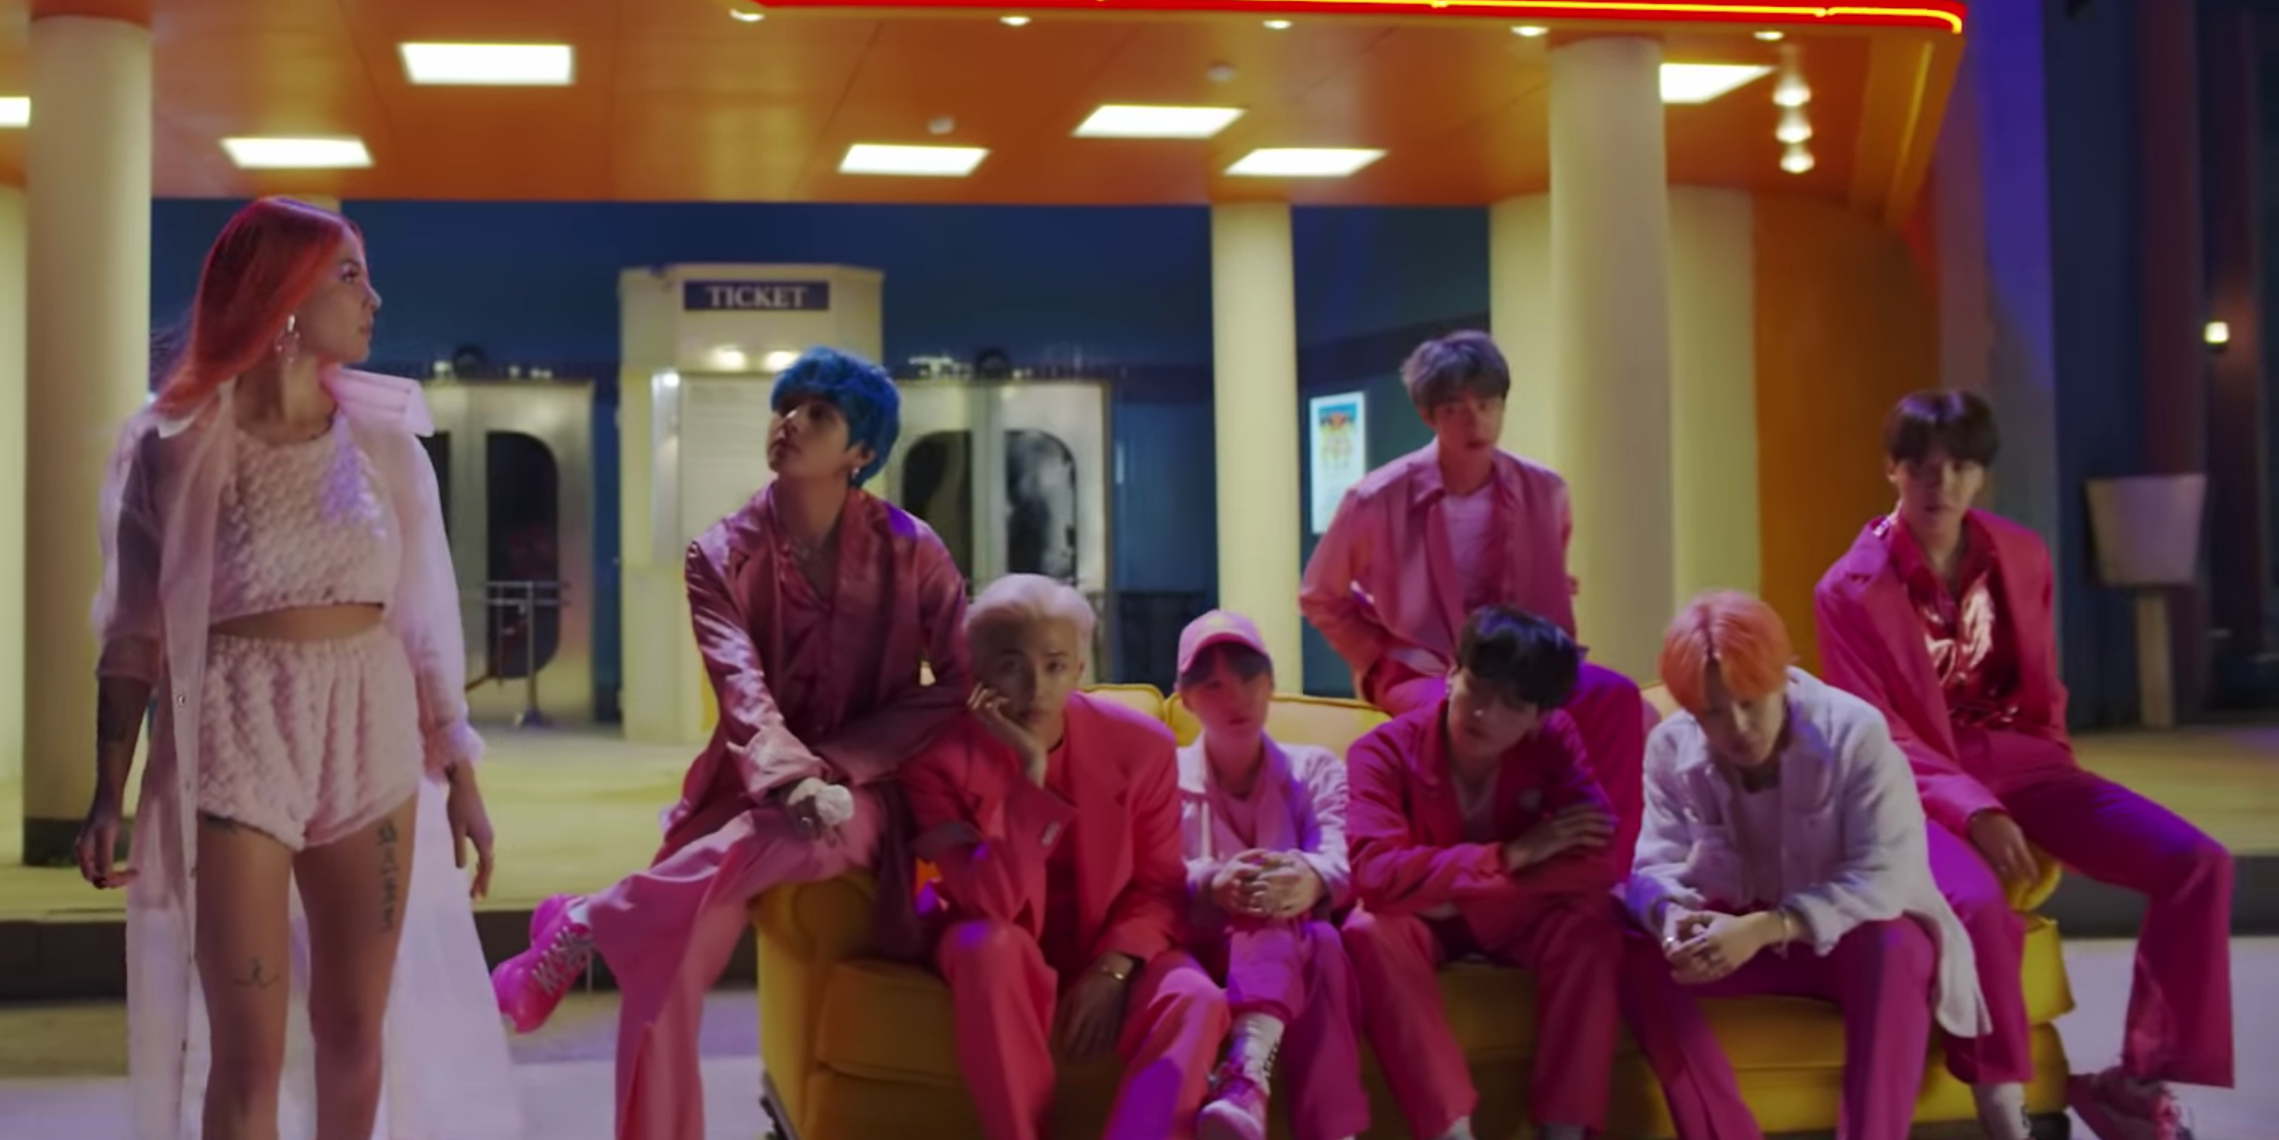 BTS previews new collaboration with Halsey, 'Boy With Luv' – watch